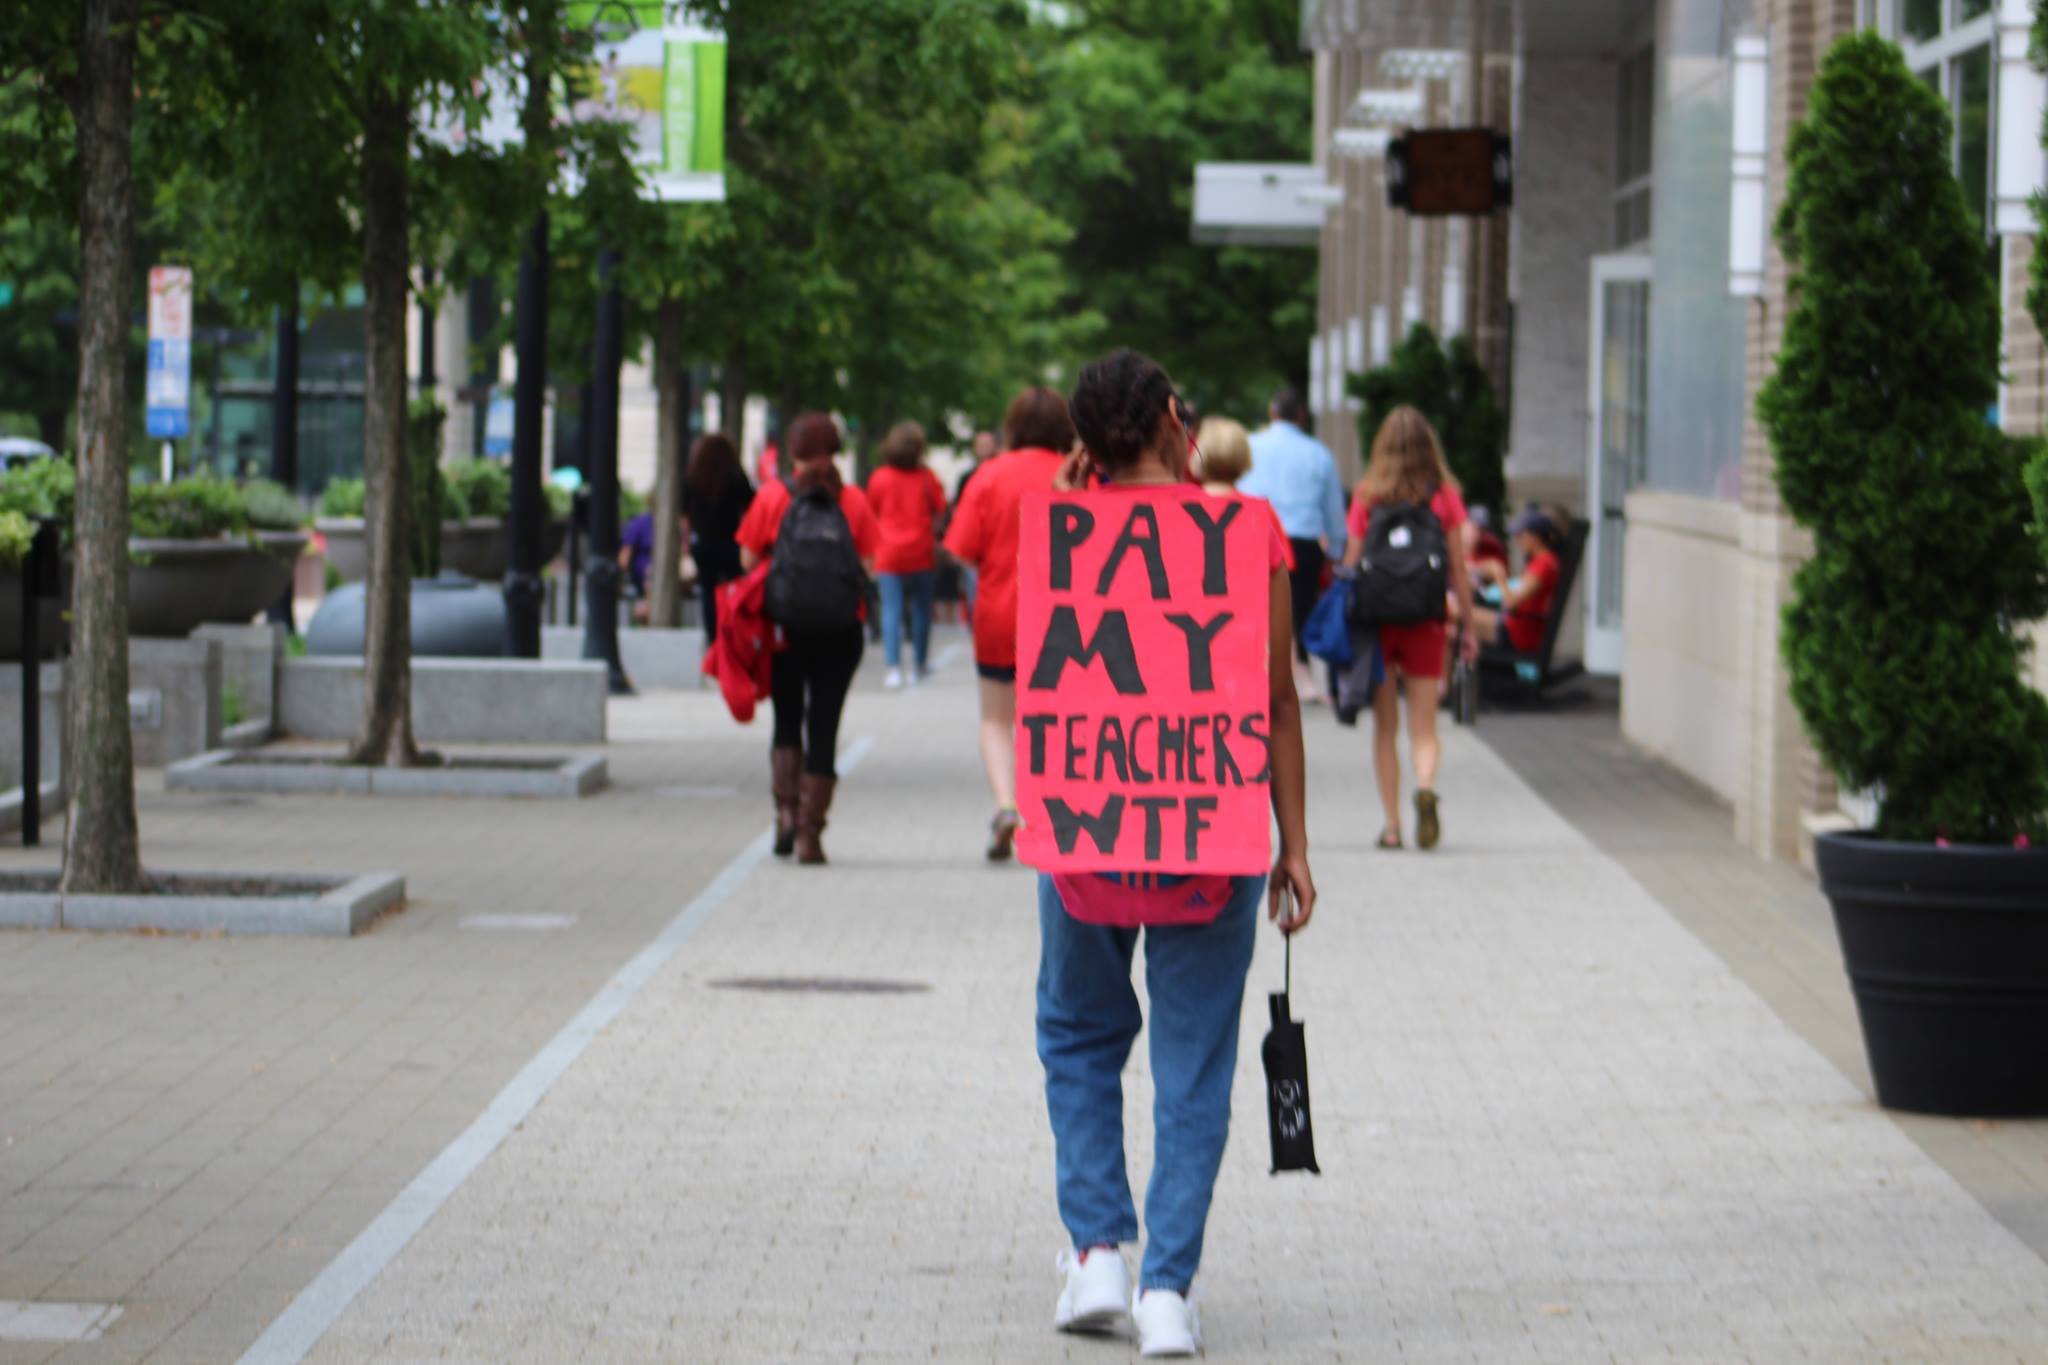 Whether it was students, teachers or other rally-goers, nearly everyone was carrying a sign at Wednesday's rally in Raleigh. (Photo: Linsay Culver)